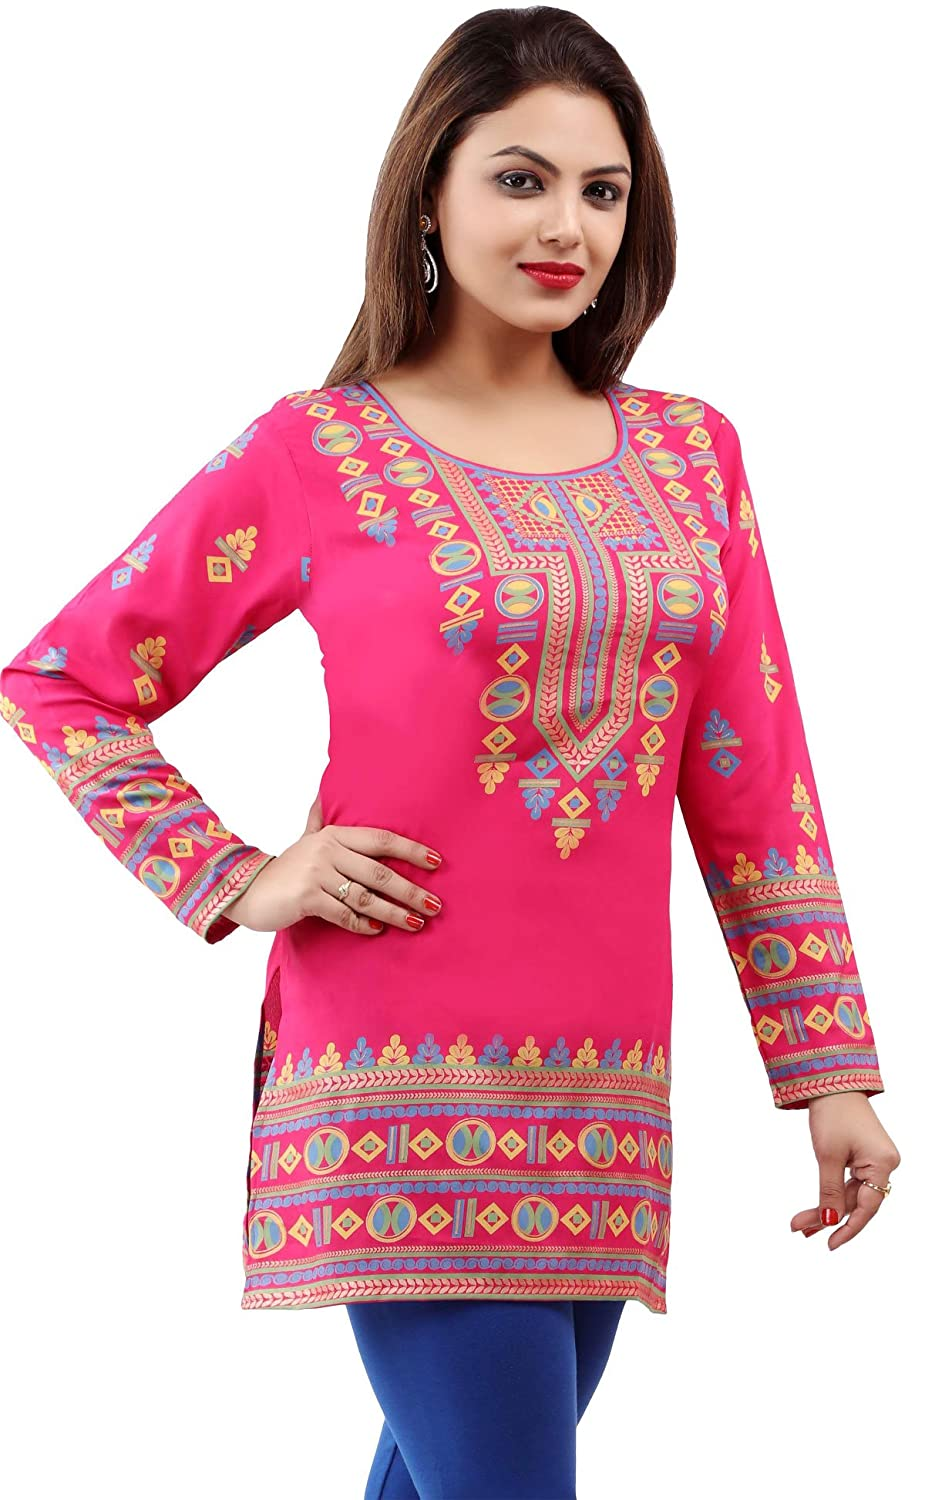 68e59ef2d2 Indian Tunic Top Womens Kurti Printed Blouse India Clothing Event28C larger  image